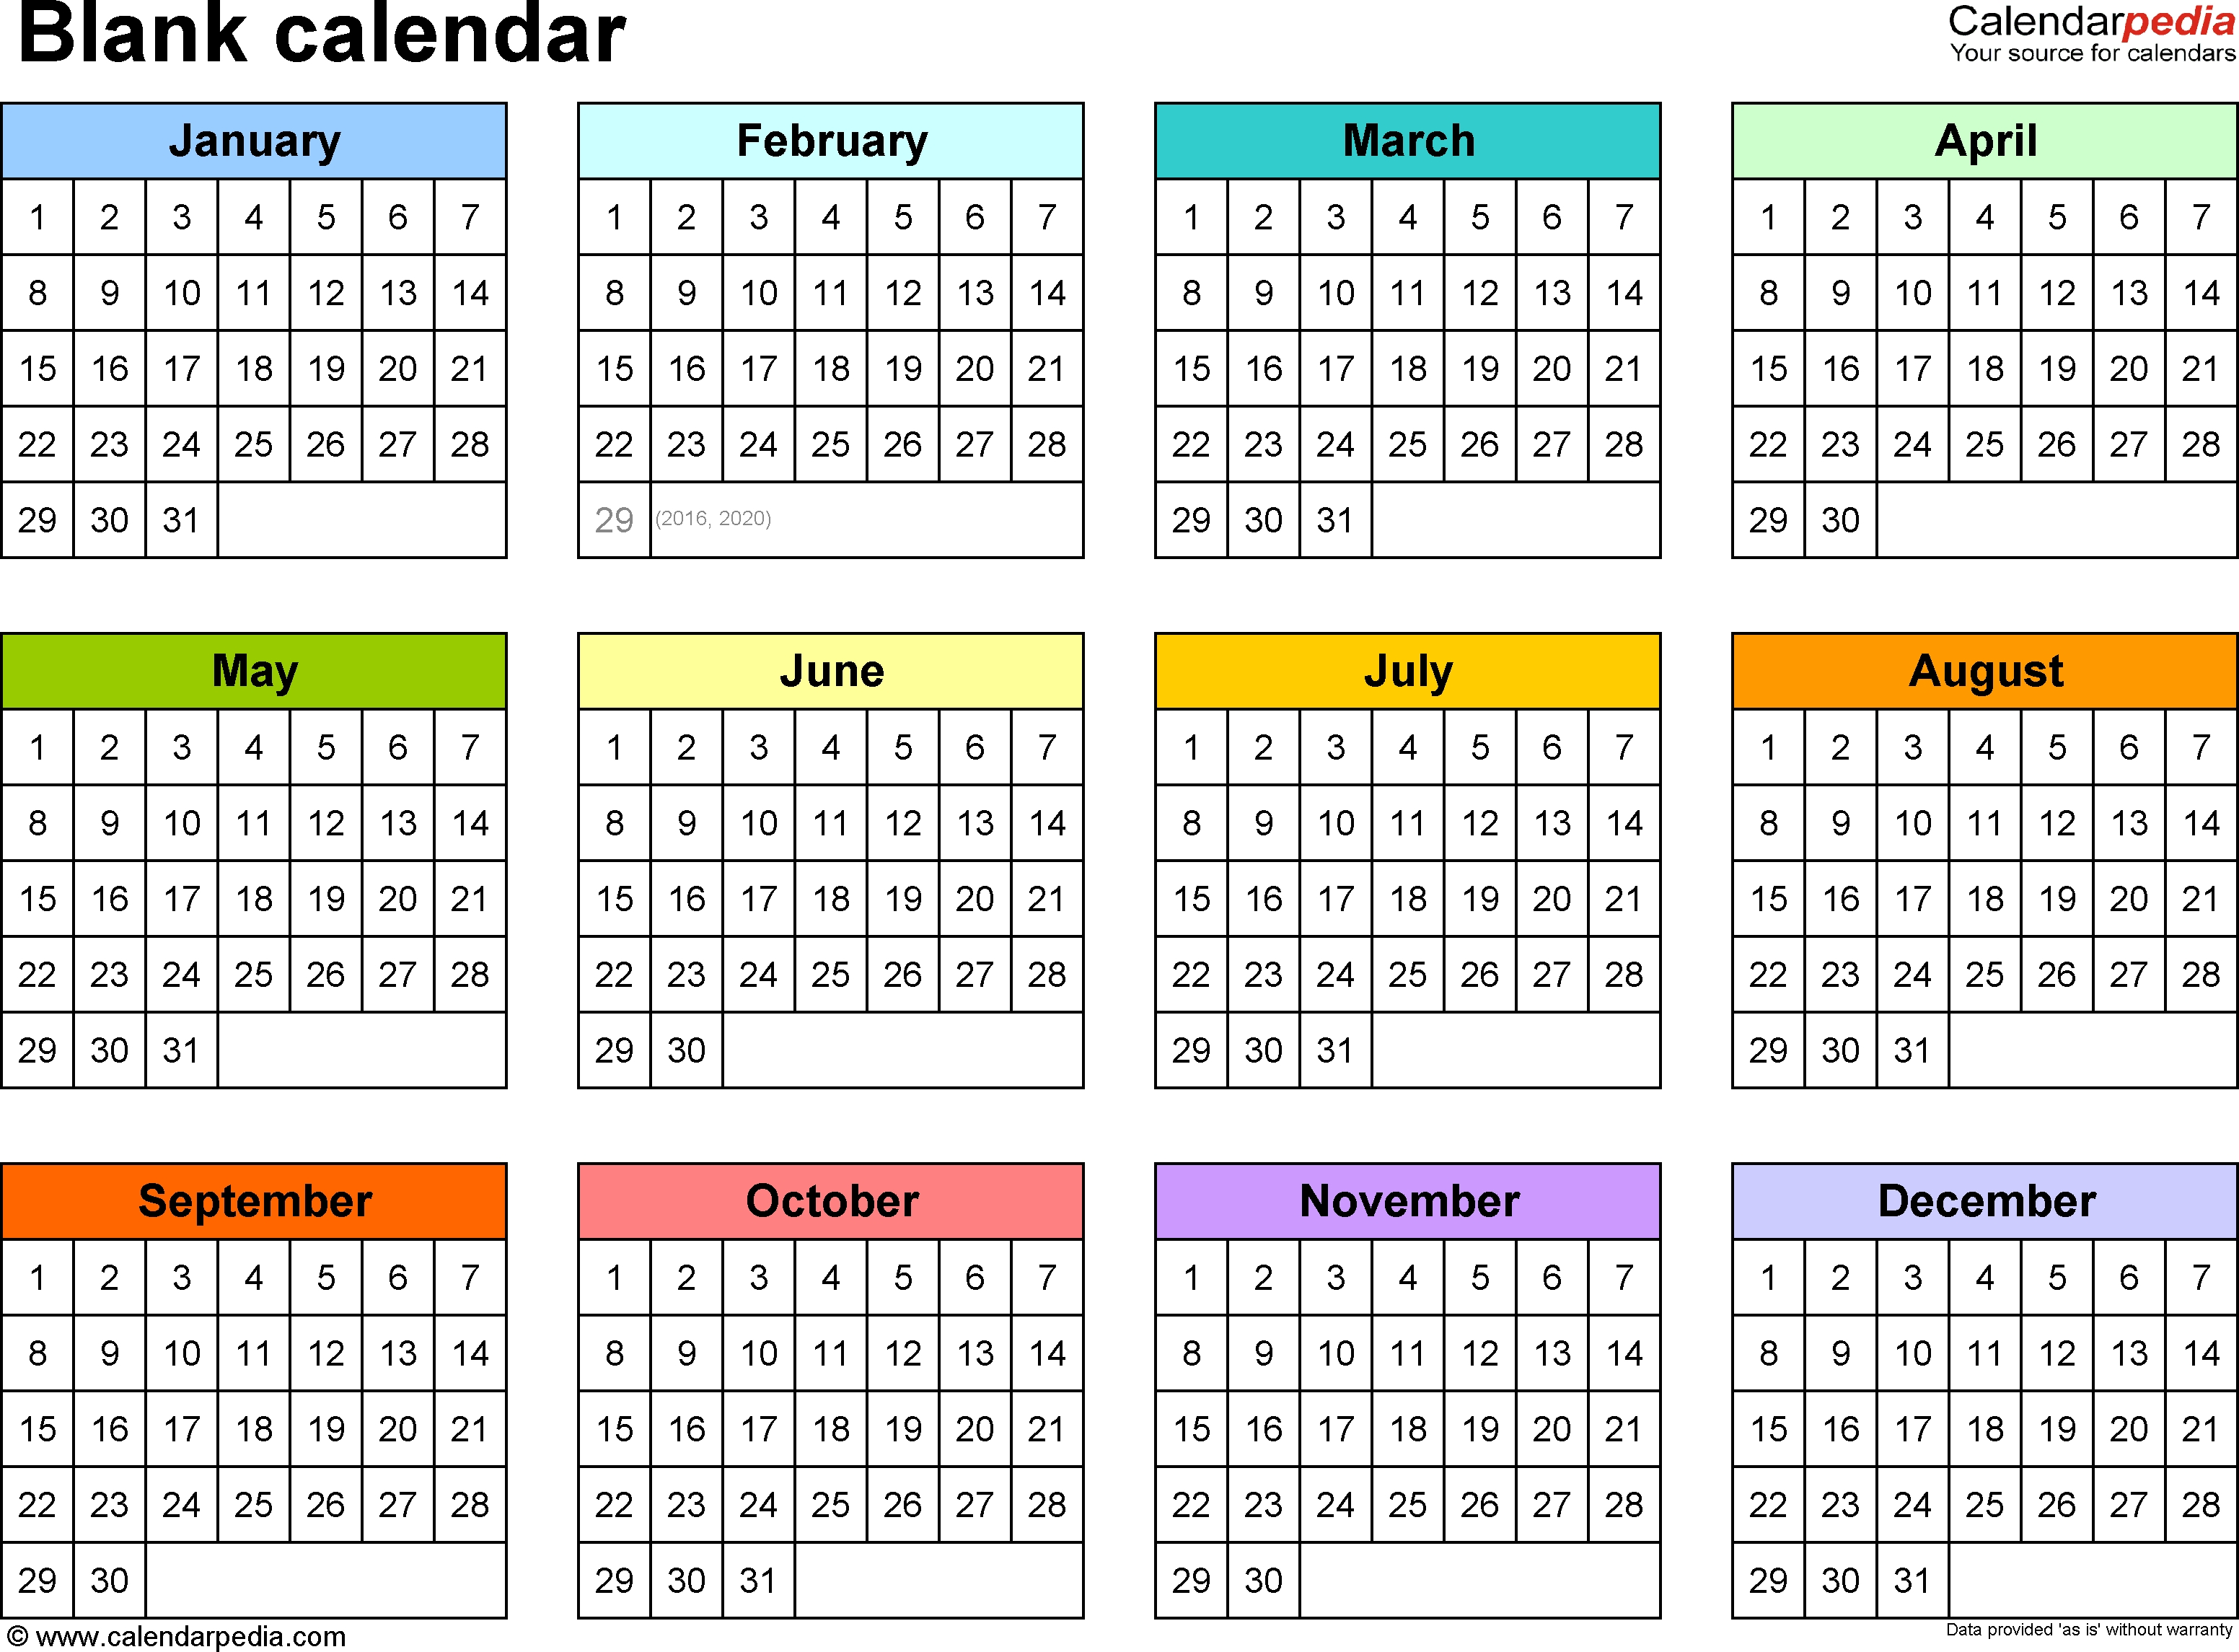 Blank Calendar - 9 Free Printable Microsoft Word Templates throughout Calendar Template Year At A Glance